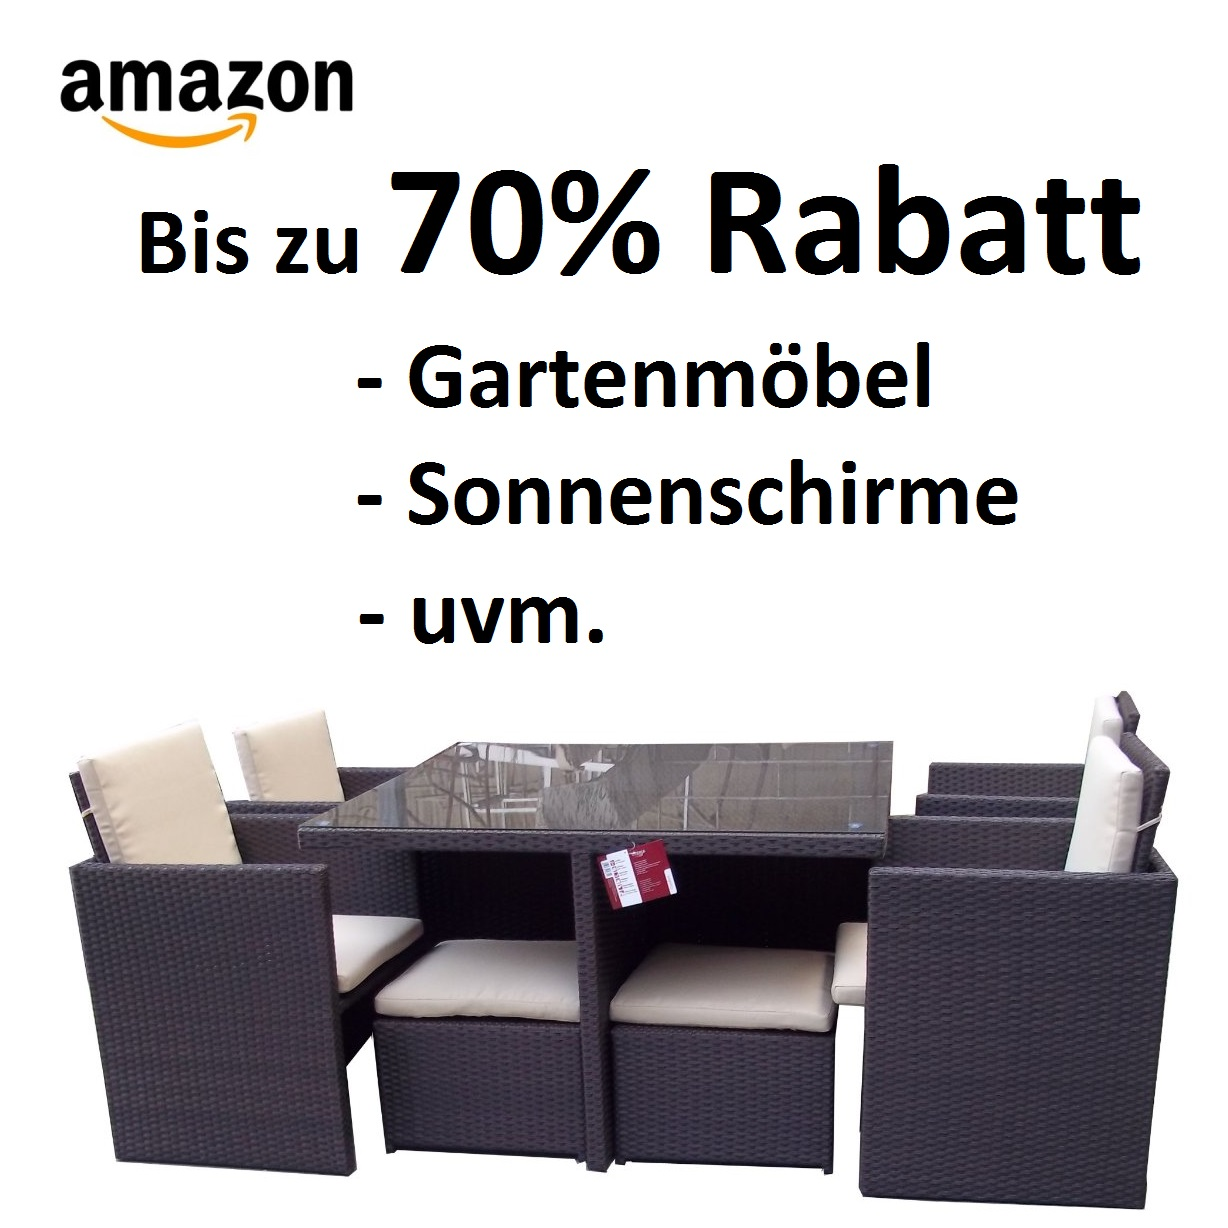 Amazon Rattanmöbel Gartenmobel Bei Amazon Rubengonzalez Club